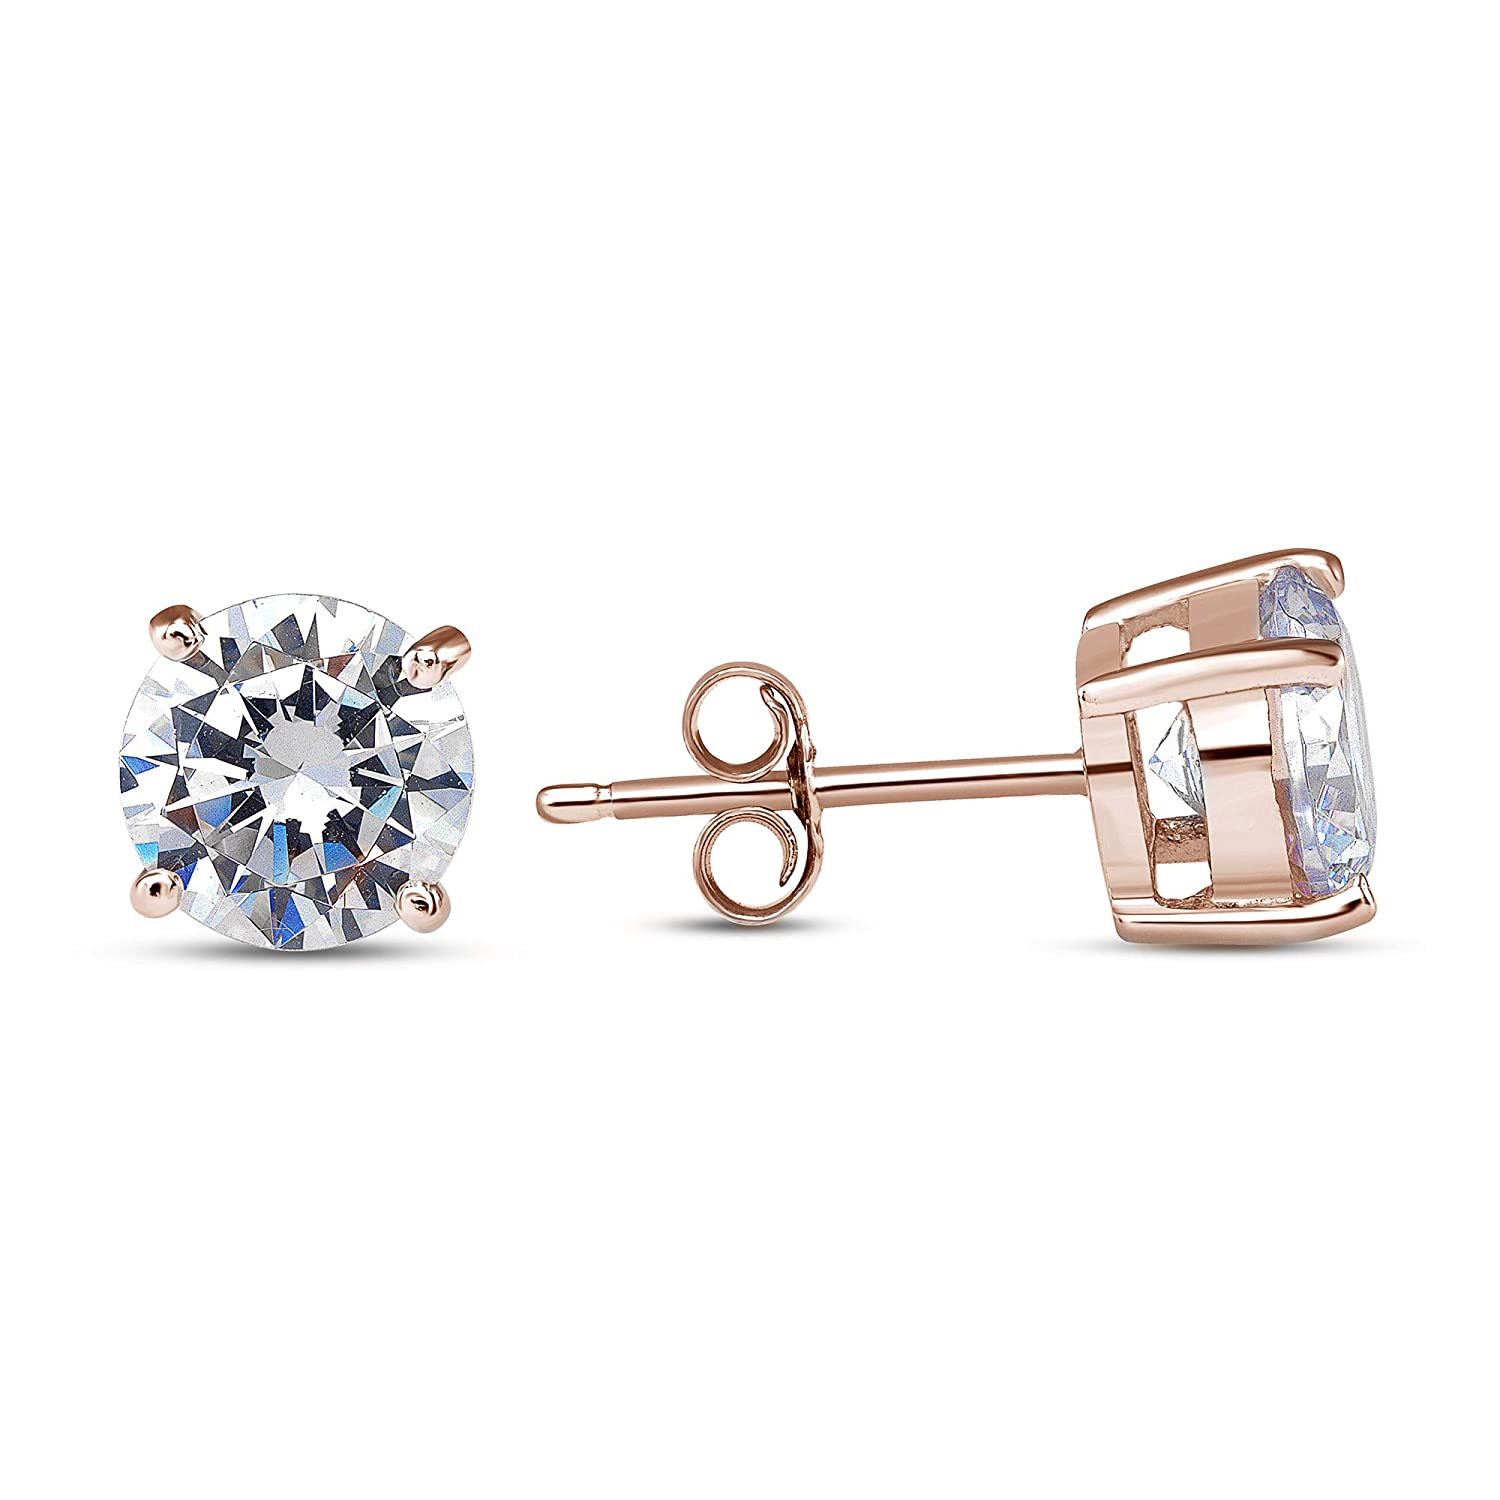 D Jewelry 925 Sterling Silver Round Solitaire Cz Push Back Stud Earrings Rose Gold Plated